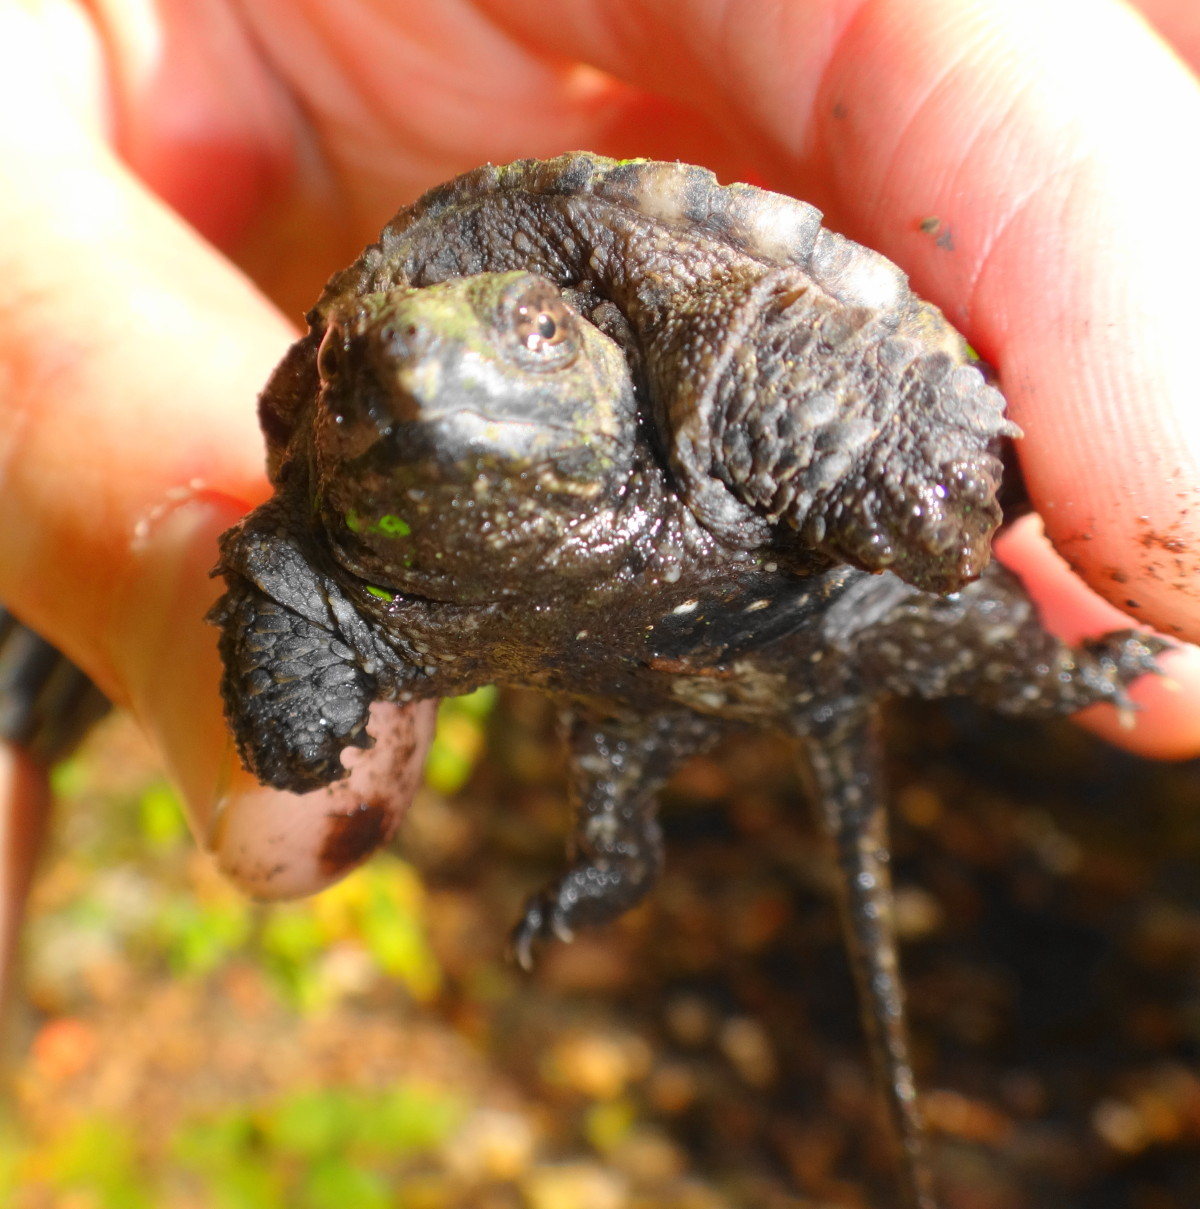 A hand holding a baby snapping turtle